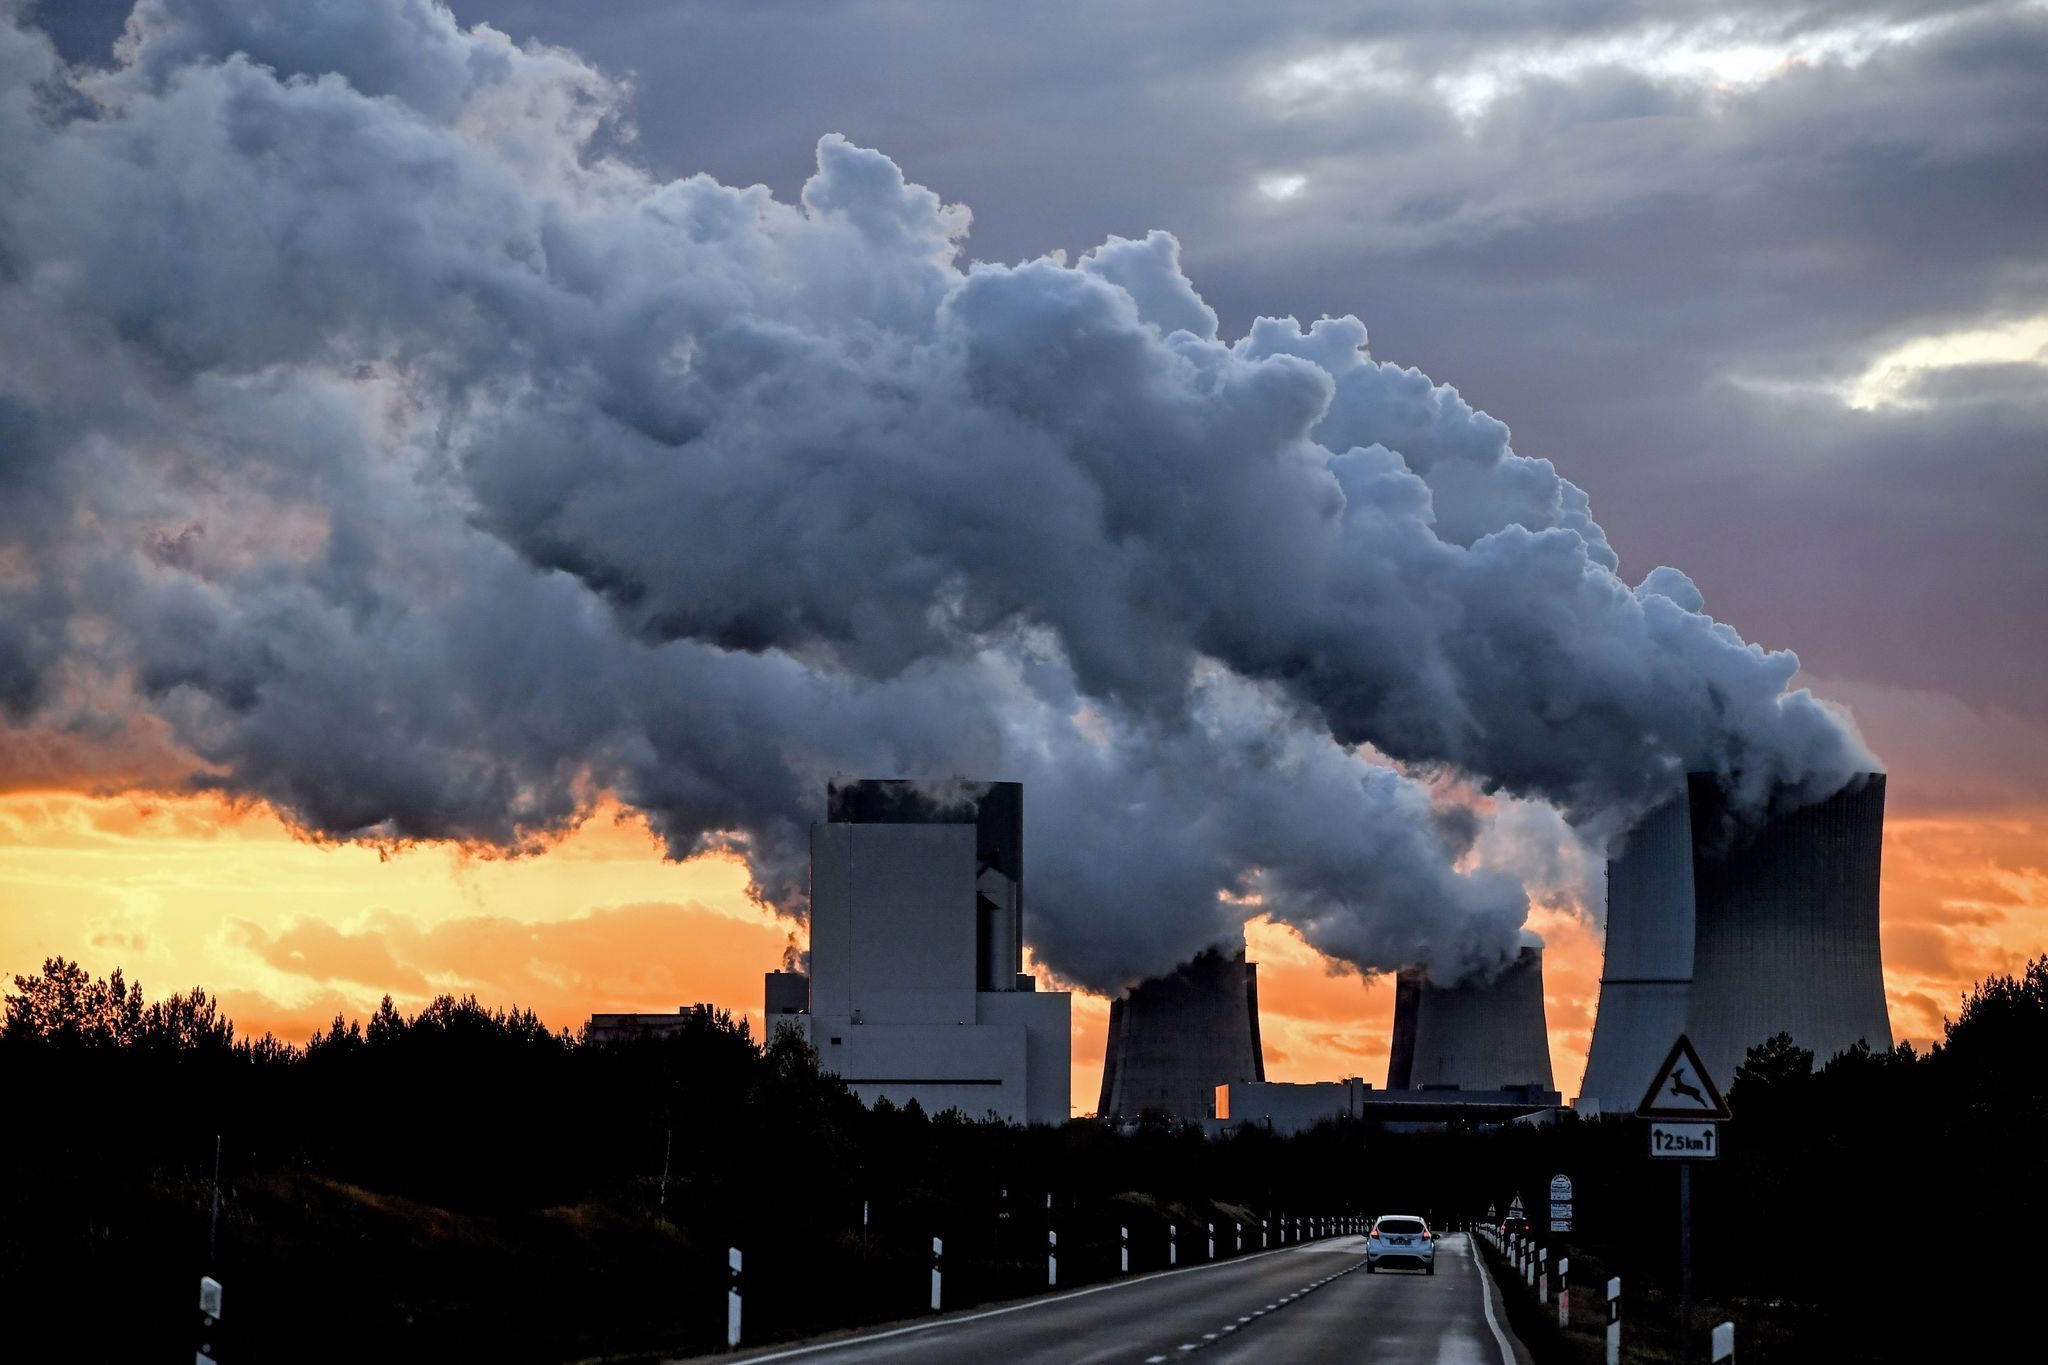 The Geopolitics of Climate Change